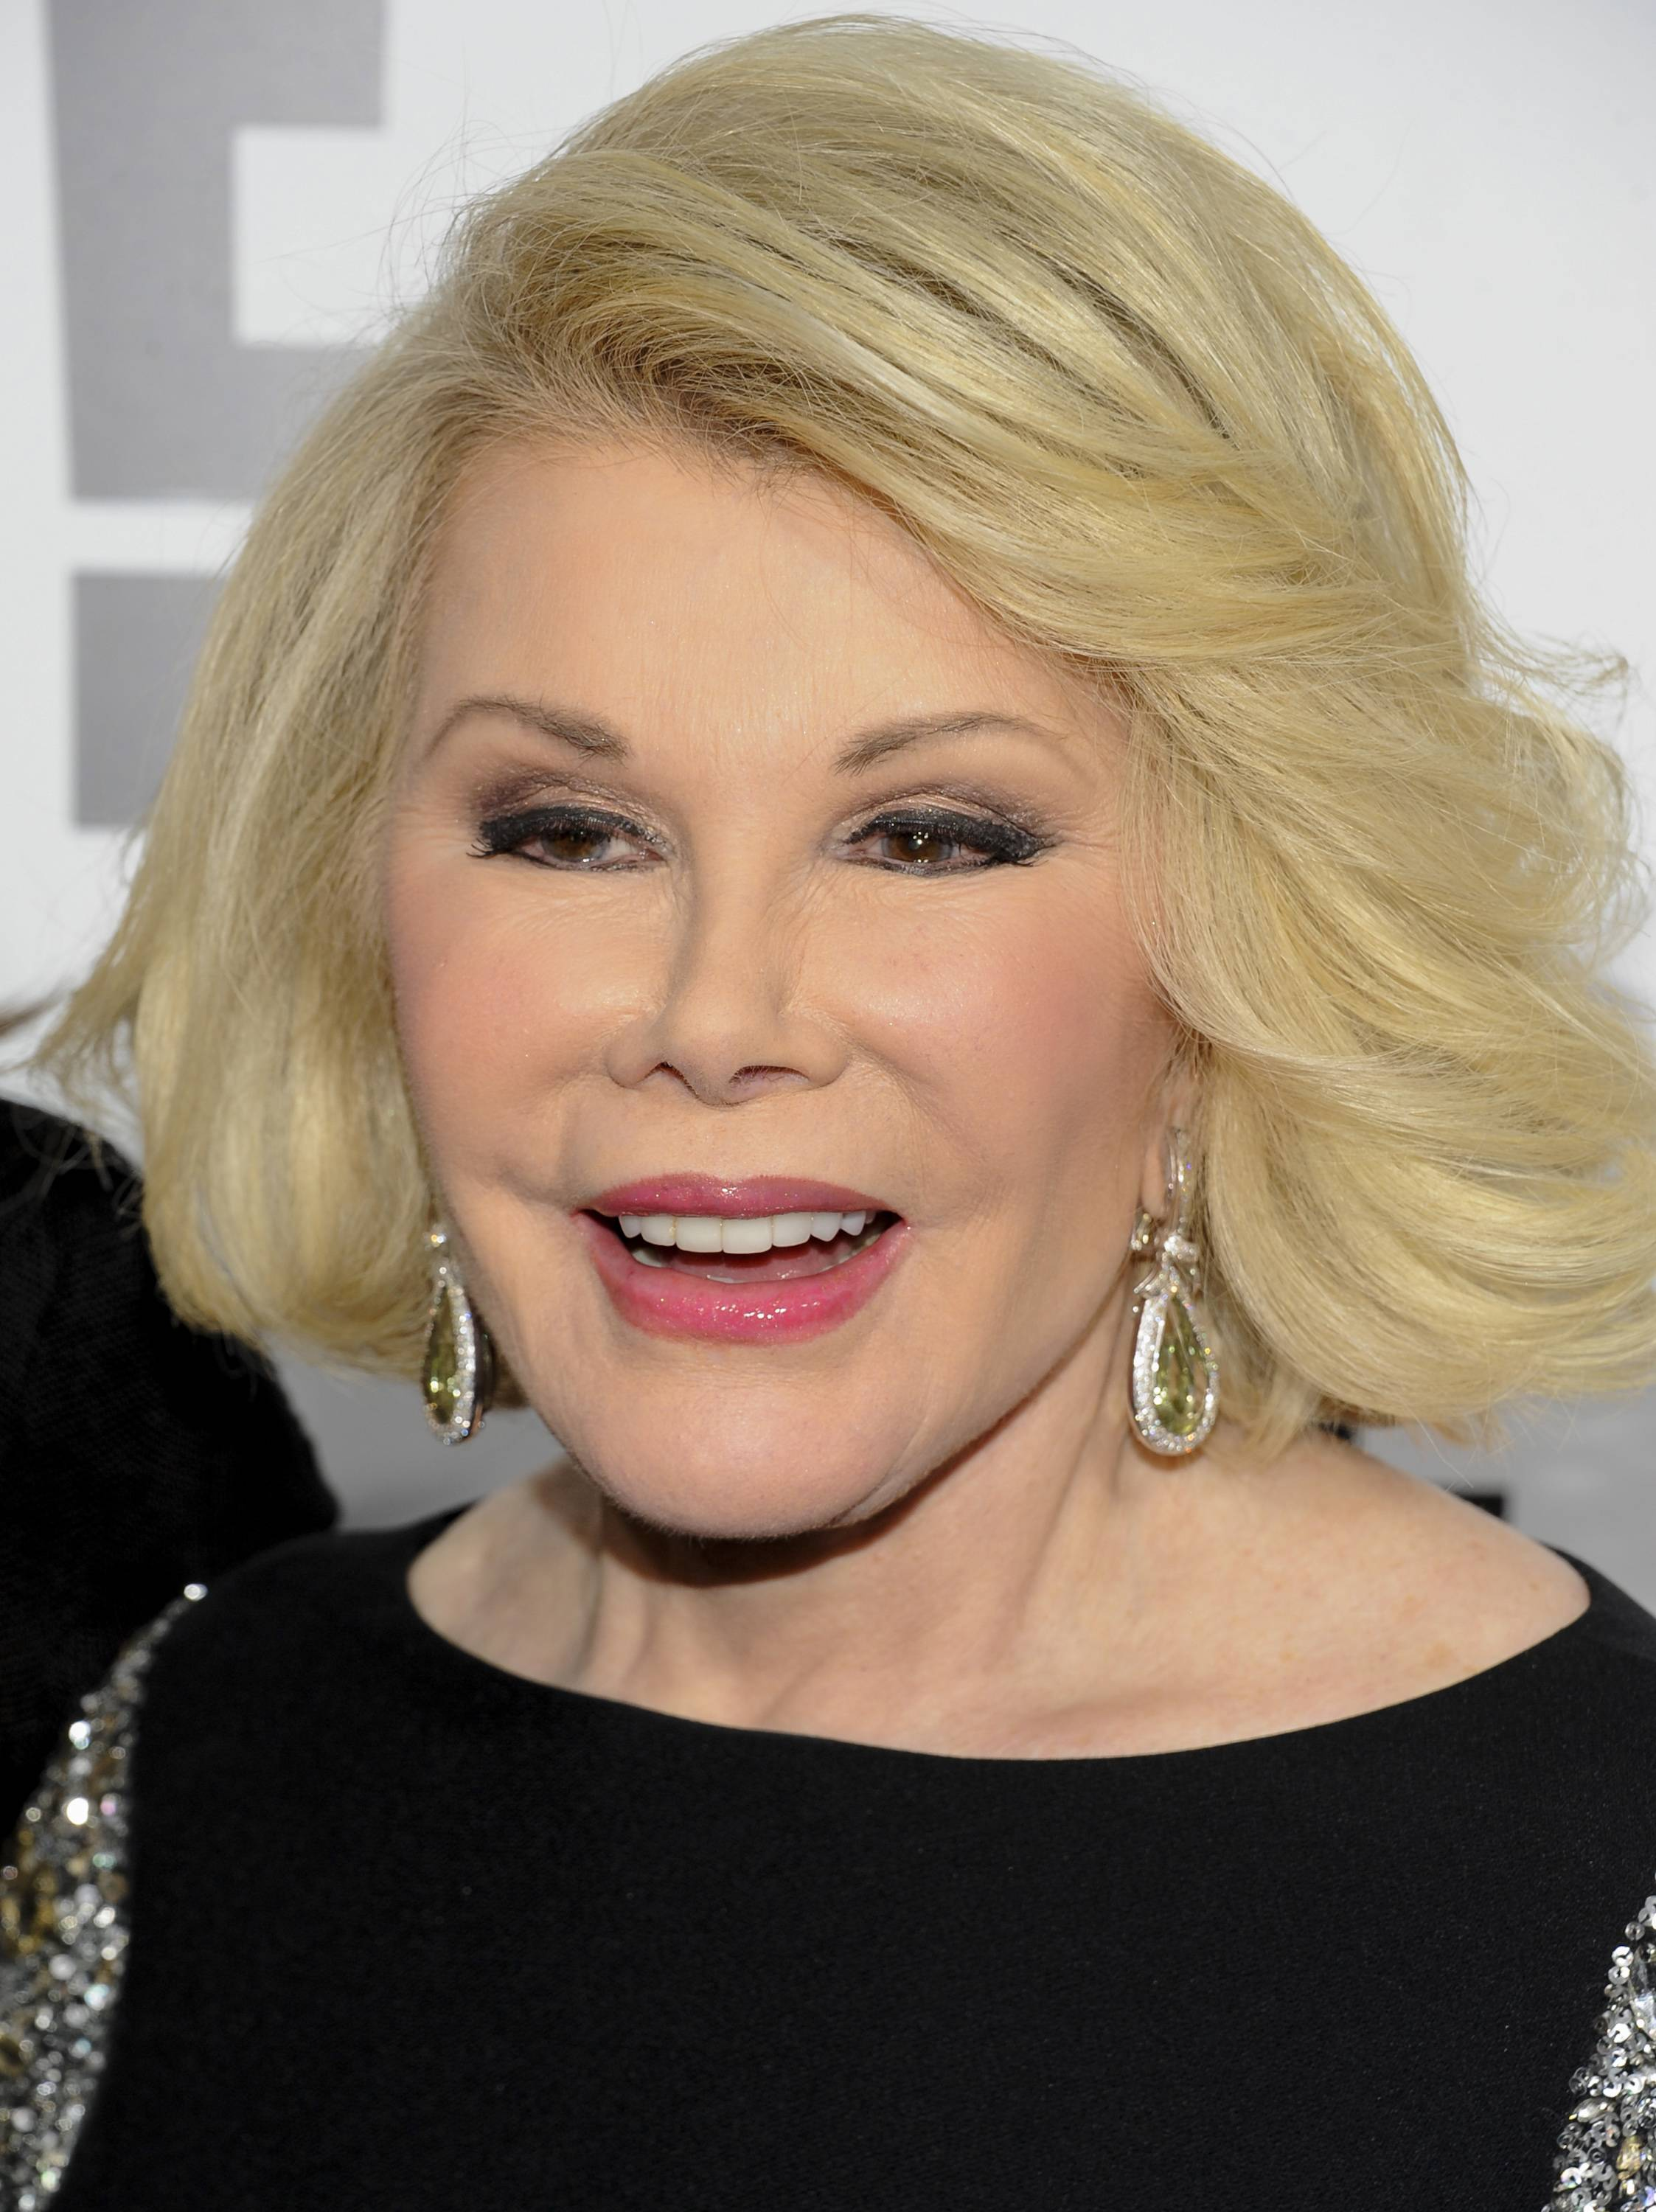 Joan Rivers' family confirmed Tuesday that the comic is on life support after going into cardiac arrest last week during a procedure at a doctor's office.